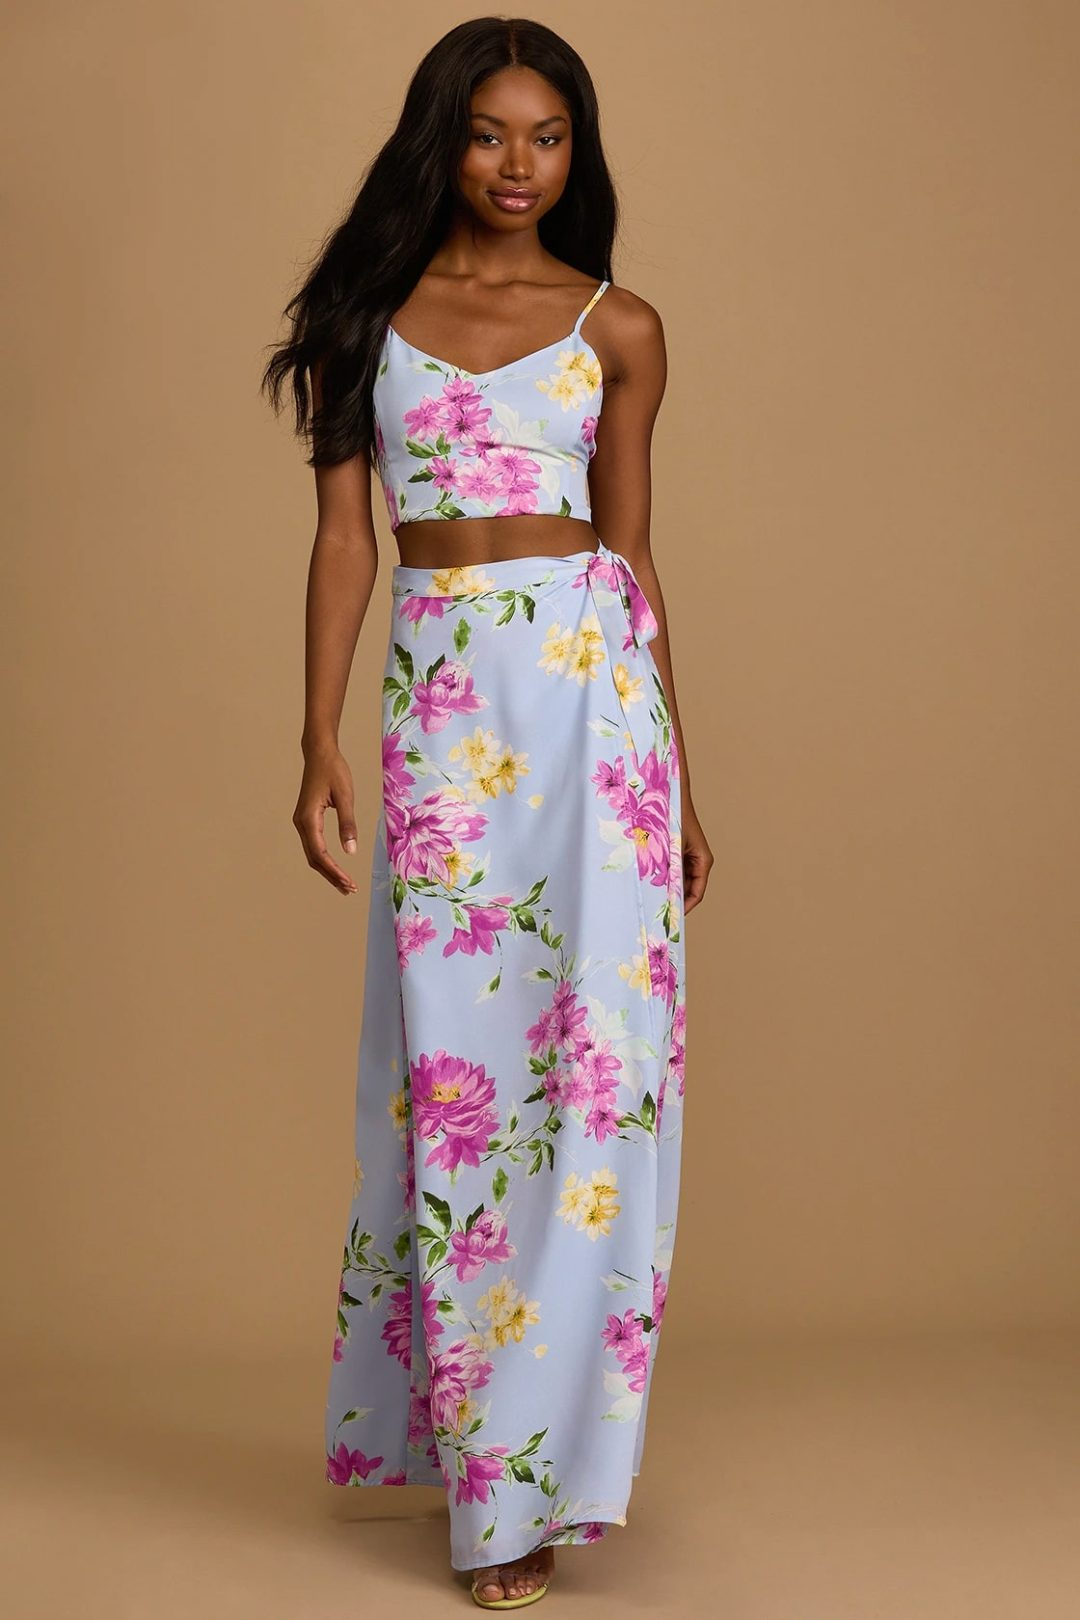 Two-piece blue top and skirt set